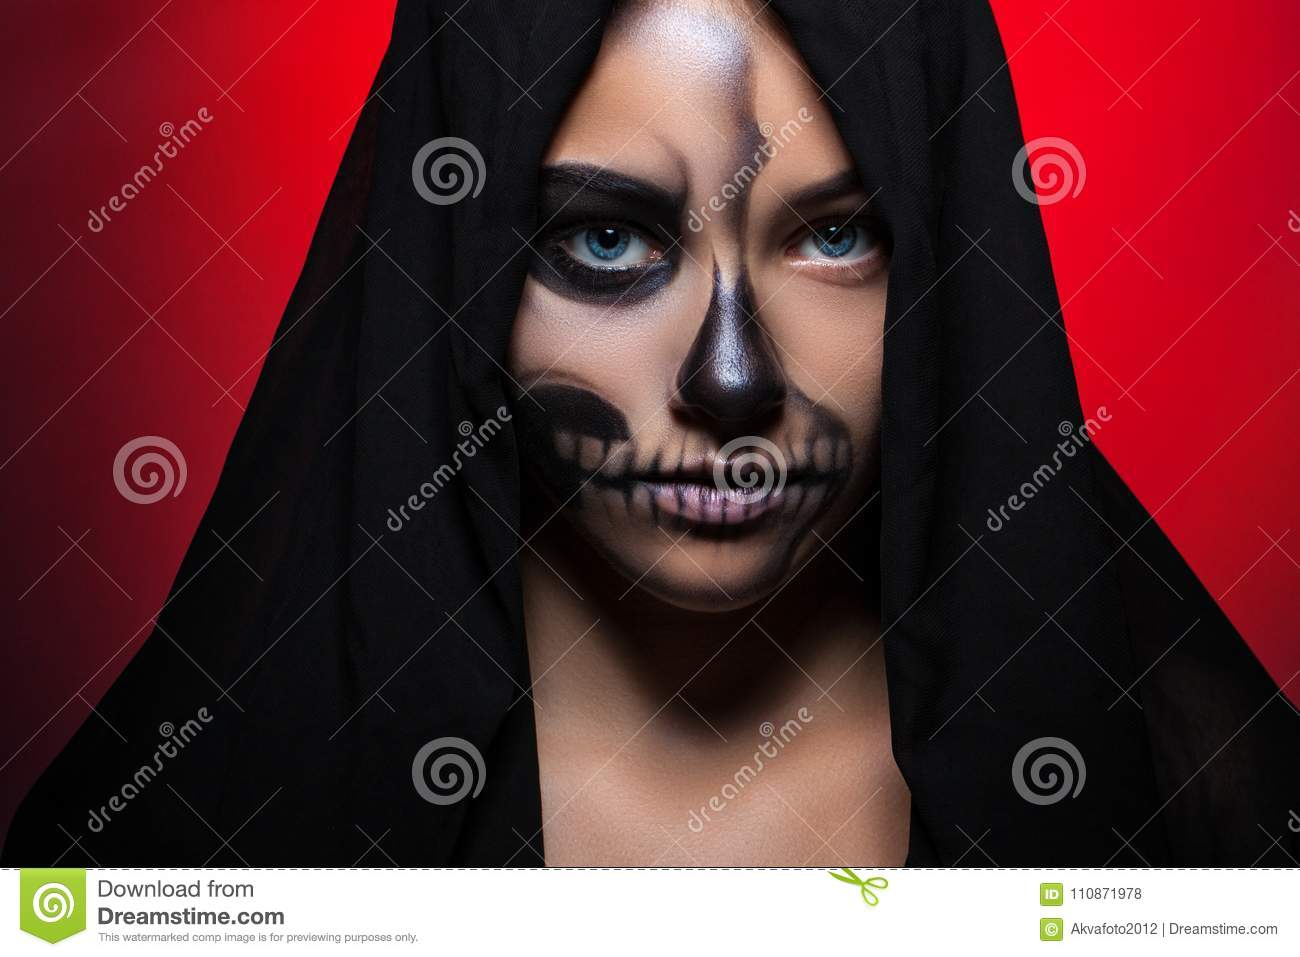 Halloween. Portrait of a young beautiful girl with skeleton makeup on her face.